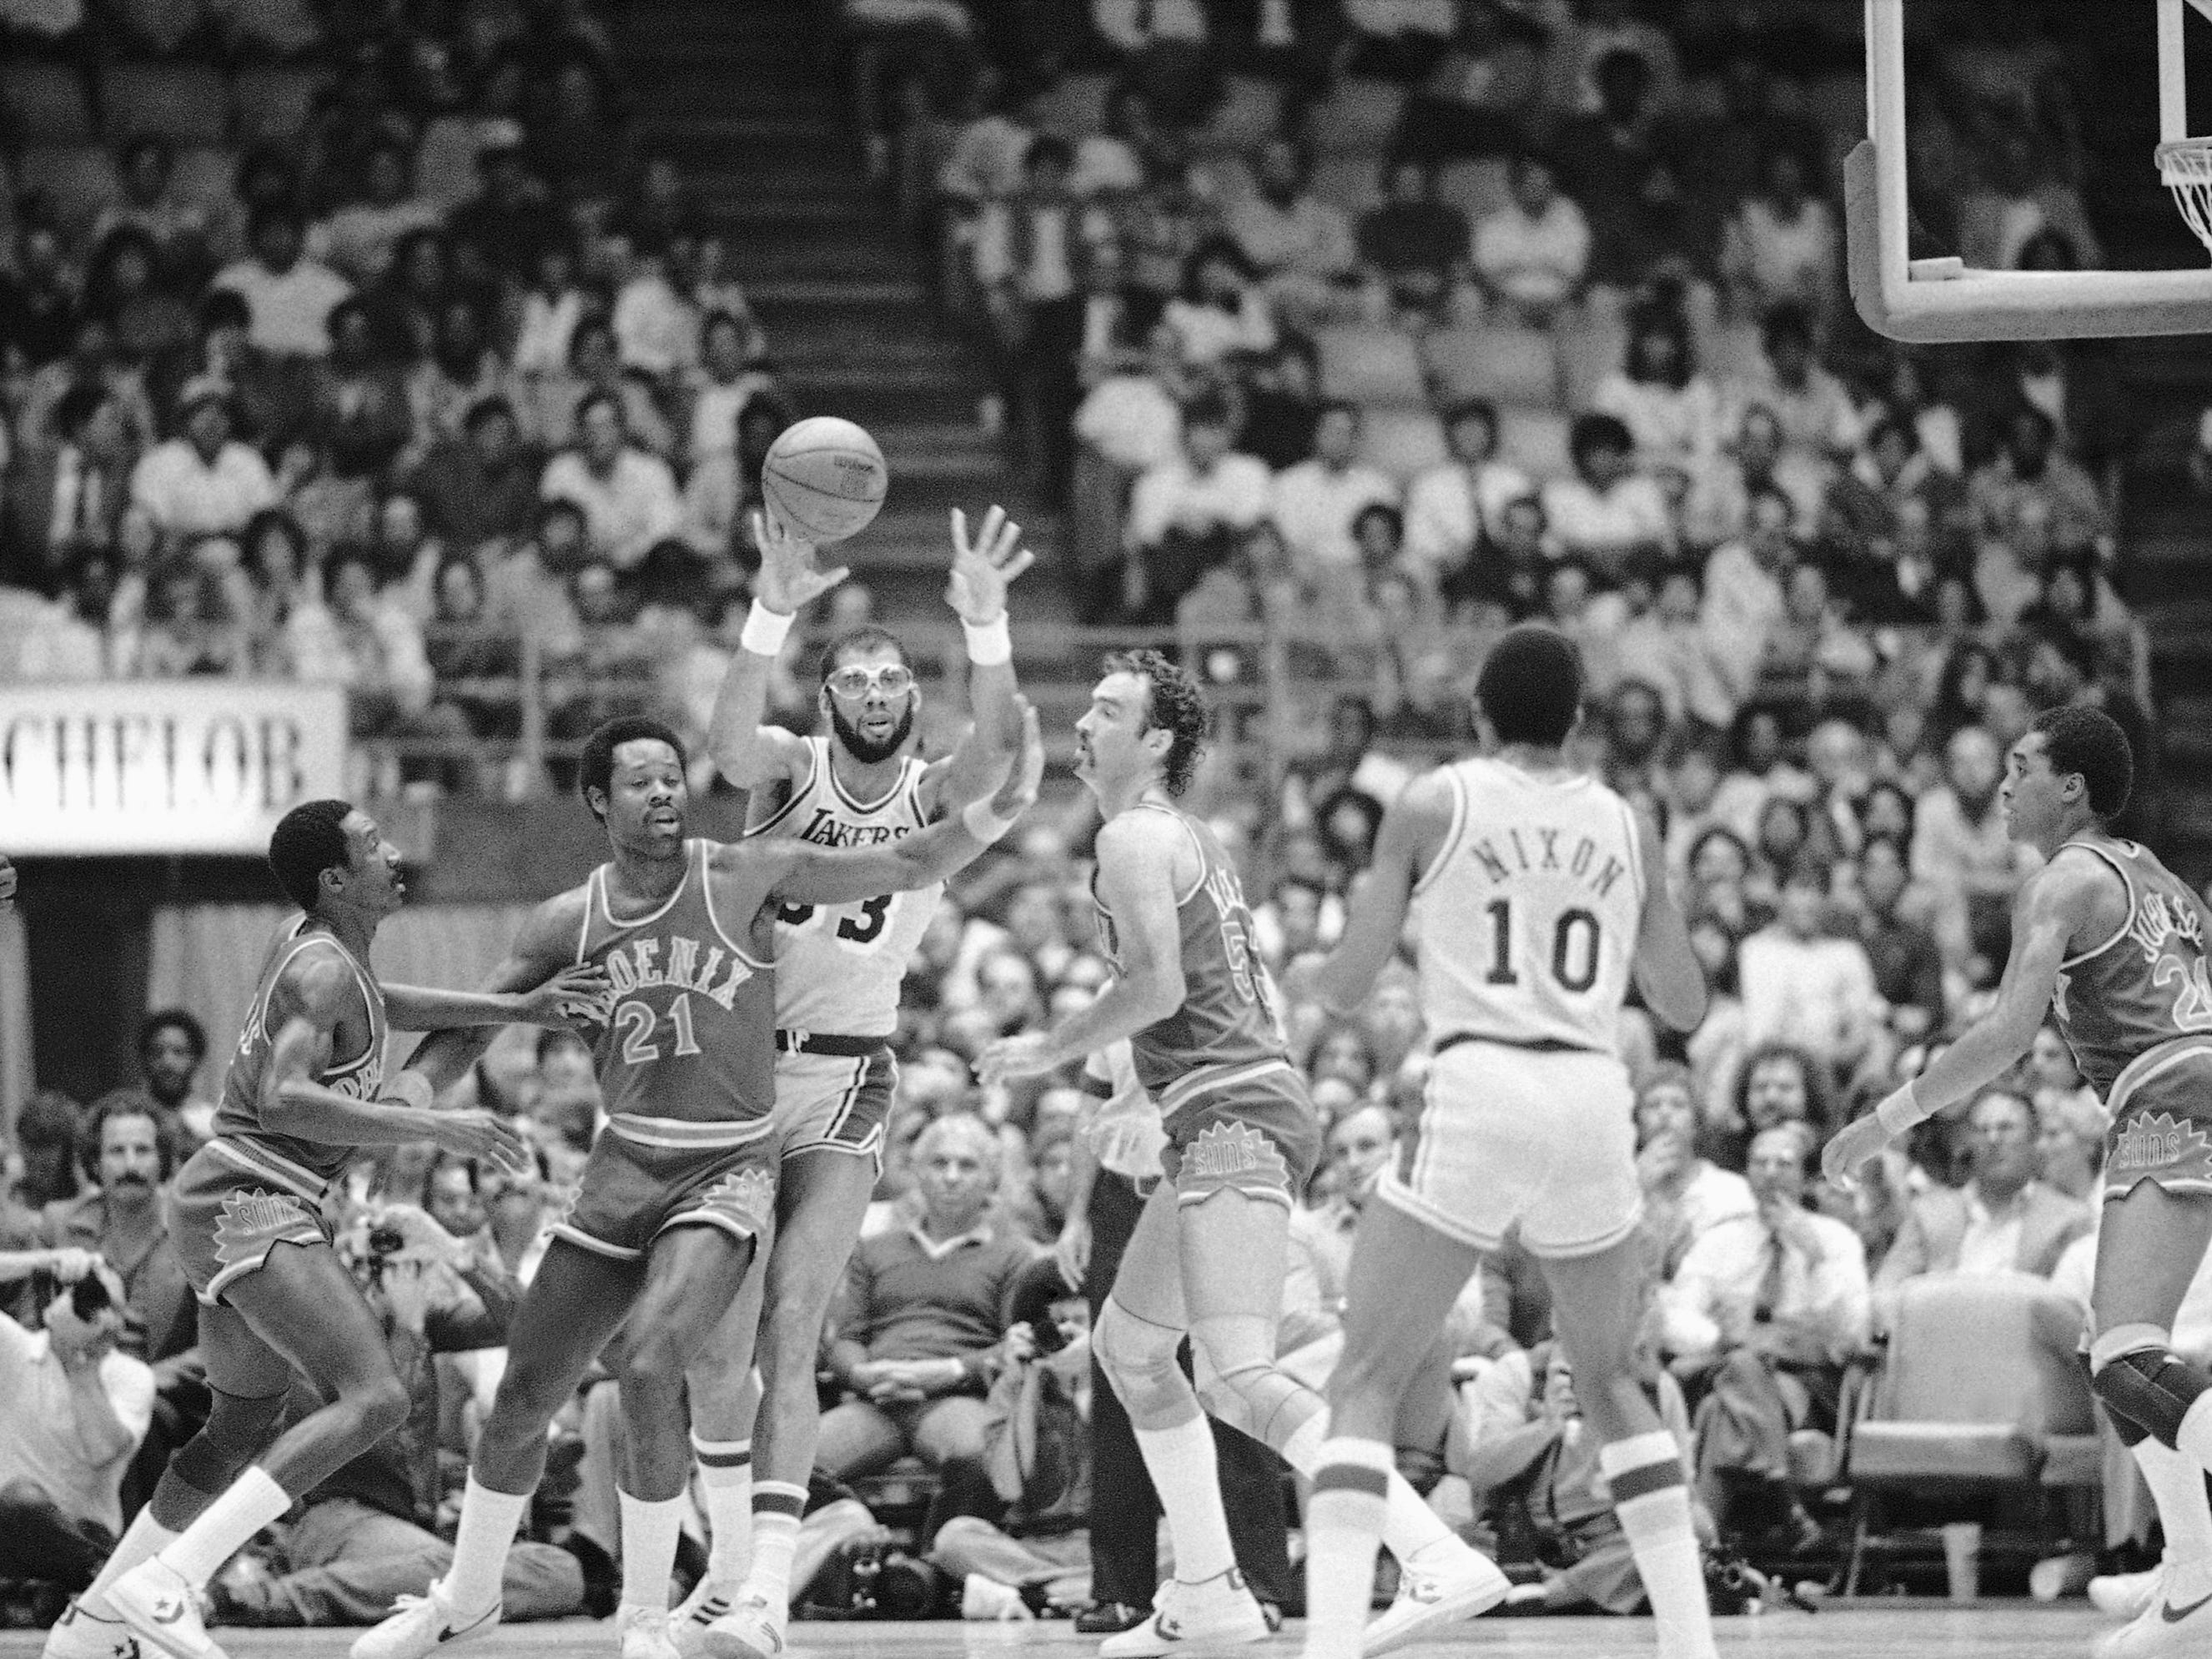 1980-81 | Suns MVP: Truck Robinson (21, seen in 1982). Robinson was at his best, mixing a midrange jumper with drives to the paint. He was an All Star, leading one of the league's best offenses.